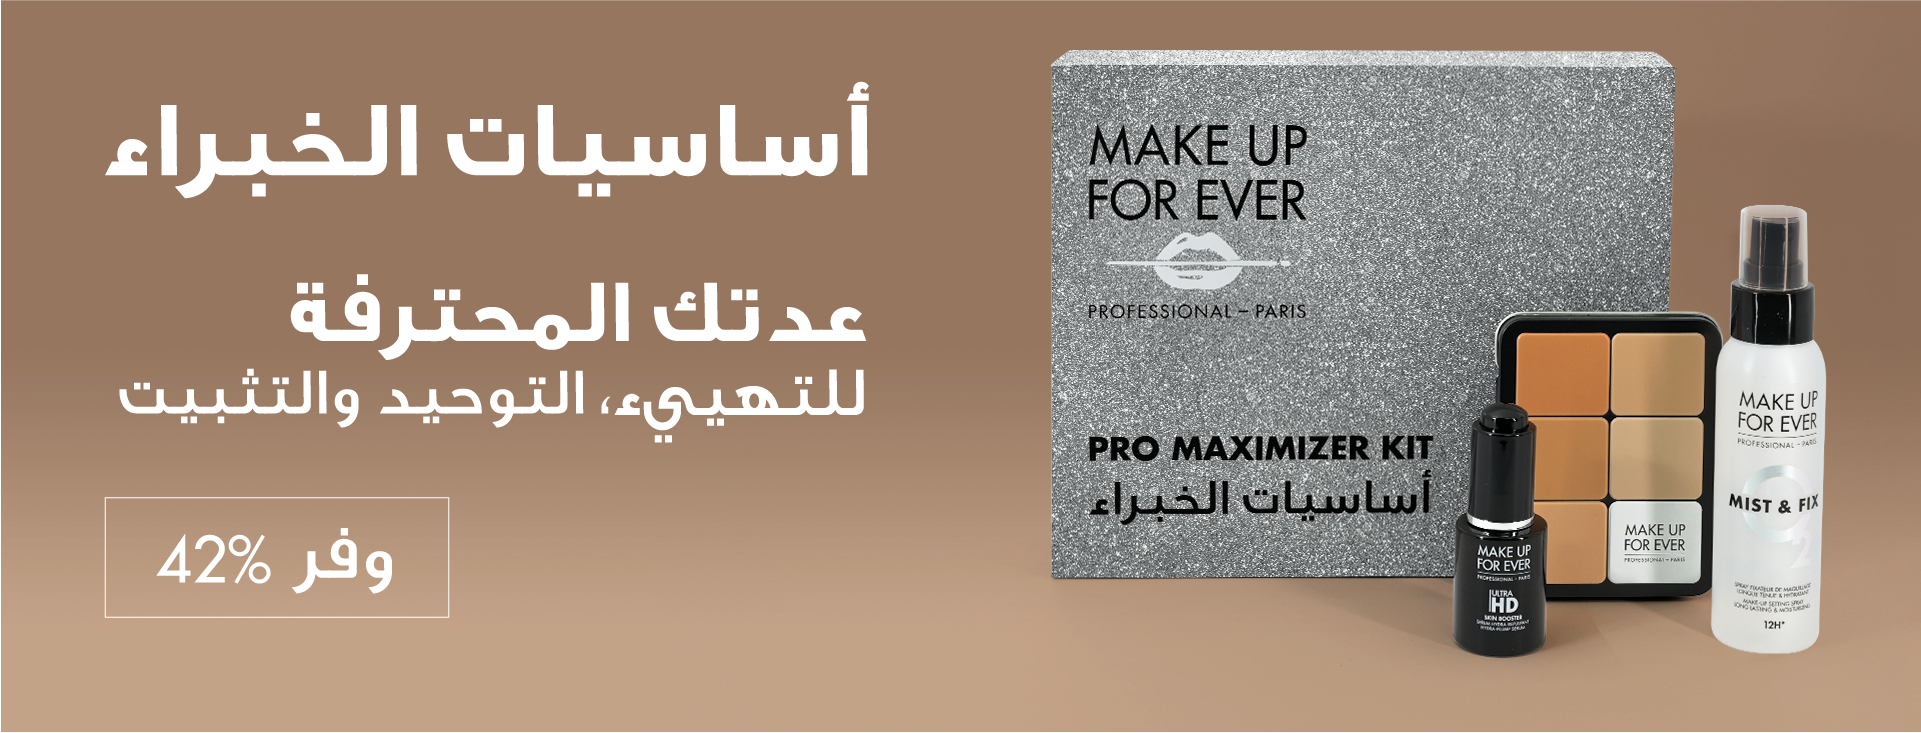 MAKE UP FOR EVER - PRO MAXIMIZER KIT